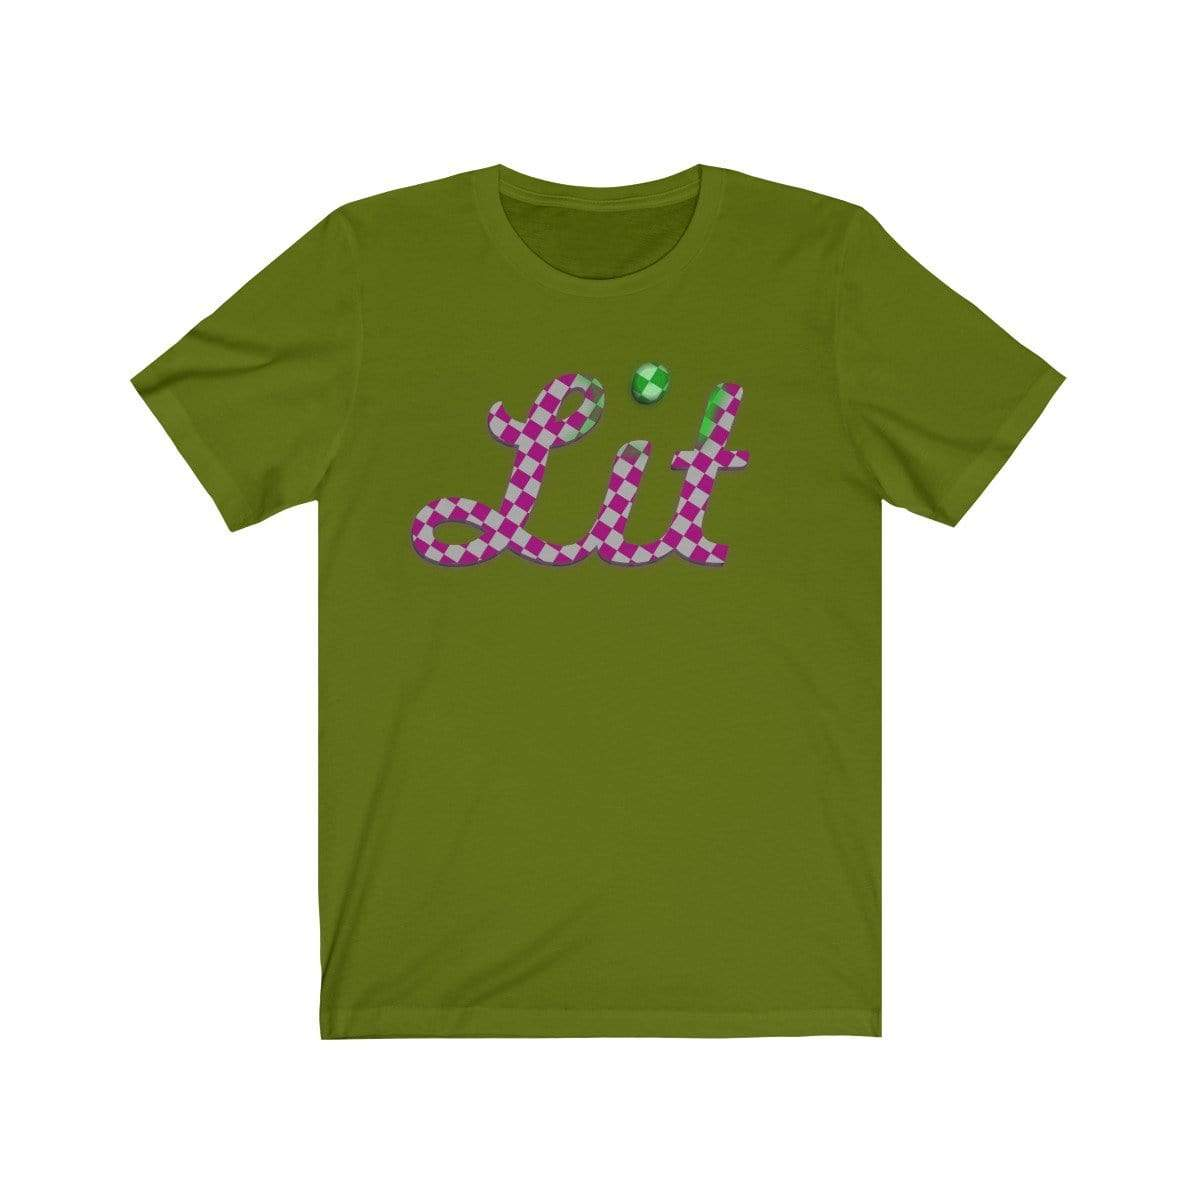 Plumskum T-Shirt Leaf / S Pink Checkered Lit T-shirt